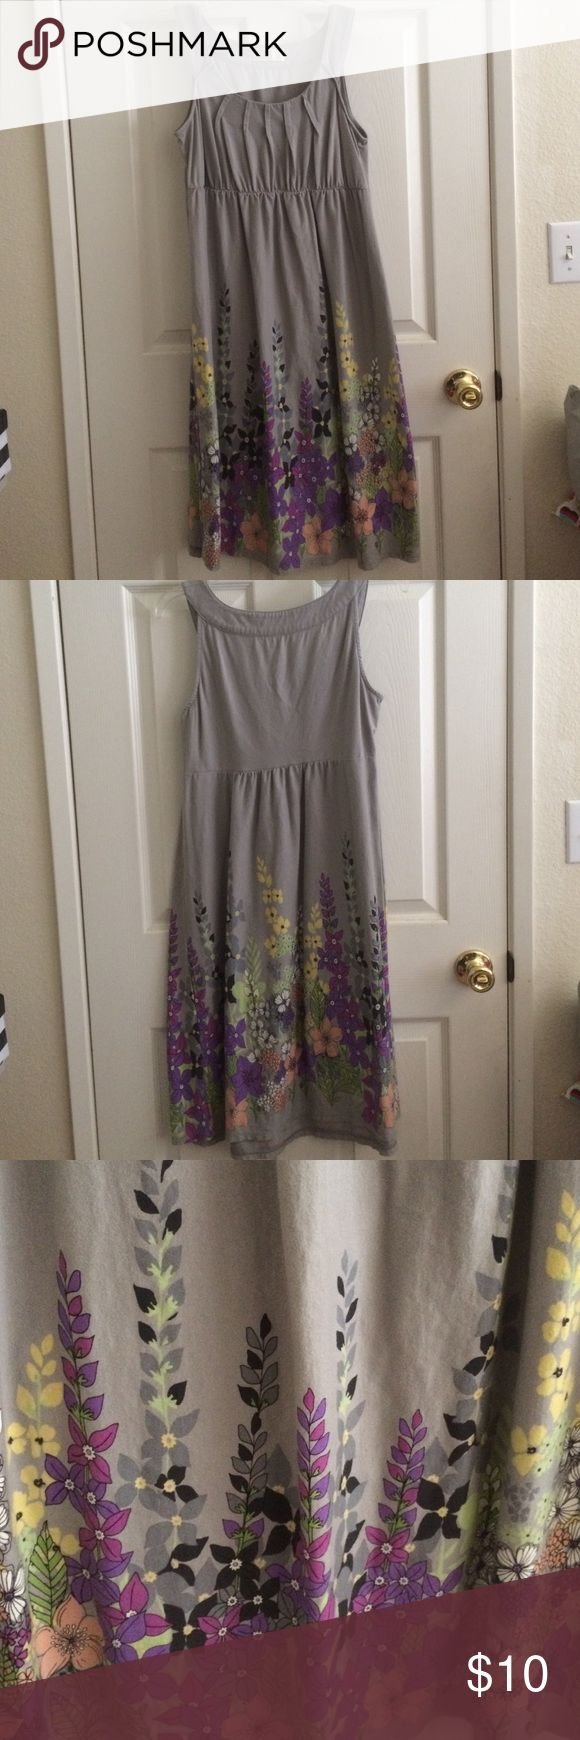 Old Navy Maternity Dress Used. Sleeveless maternity dress. 100% cotton. No stains or holes. No trades. Offers and questions are welcome. Old Navy Dresses Midi